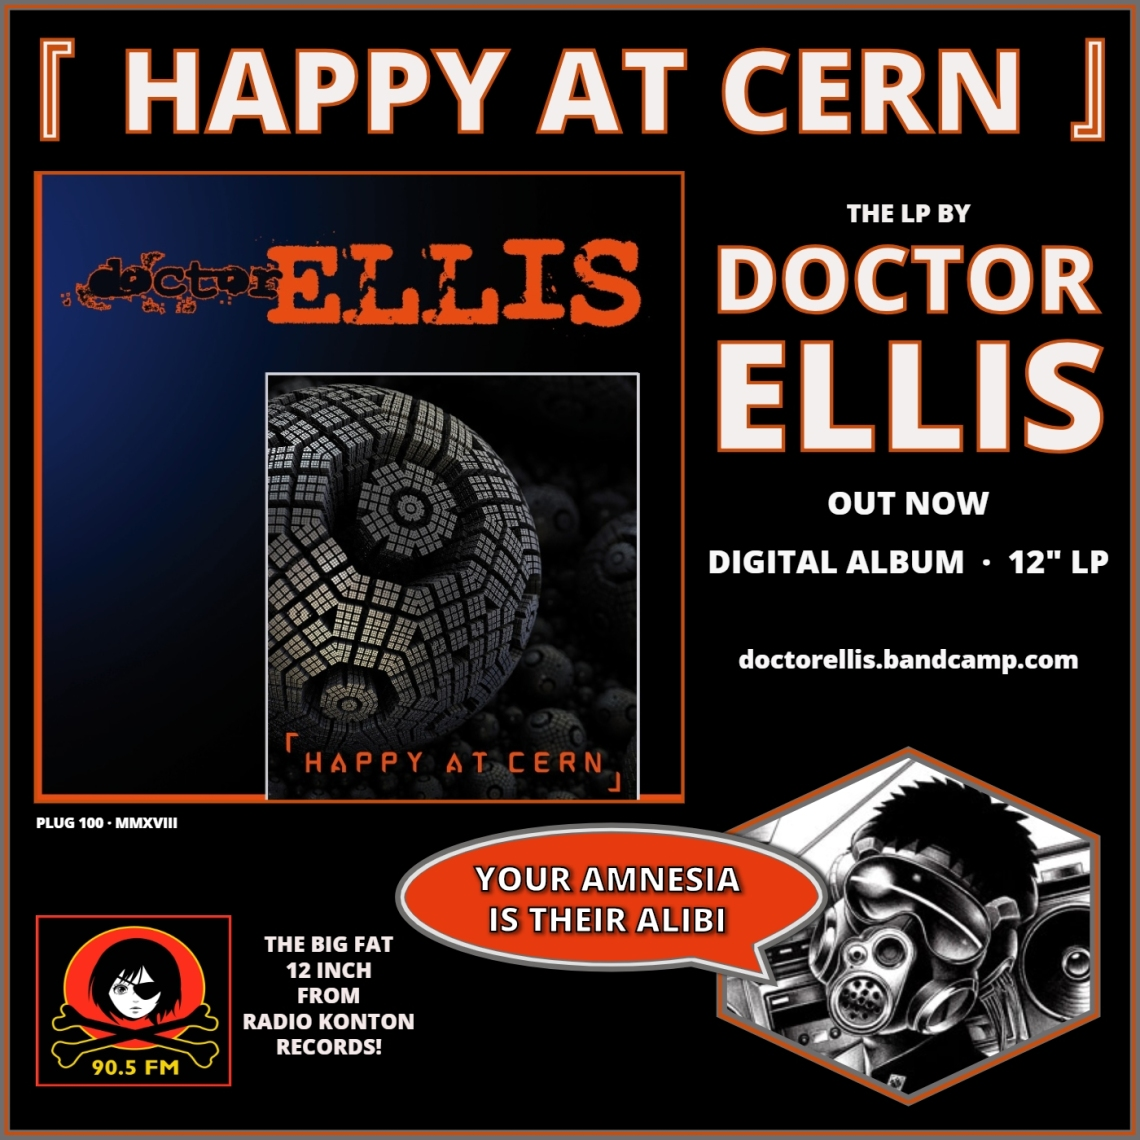 DOCTOR ELLIS - Happy at CERN [advert c]